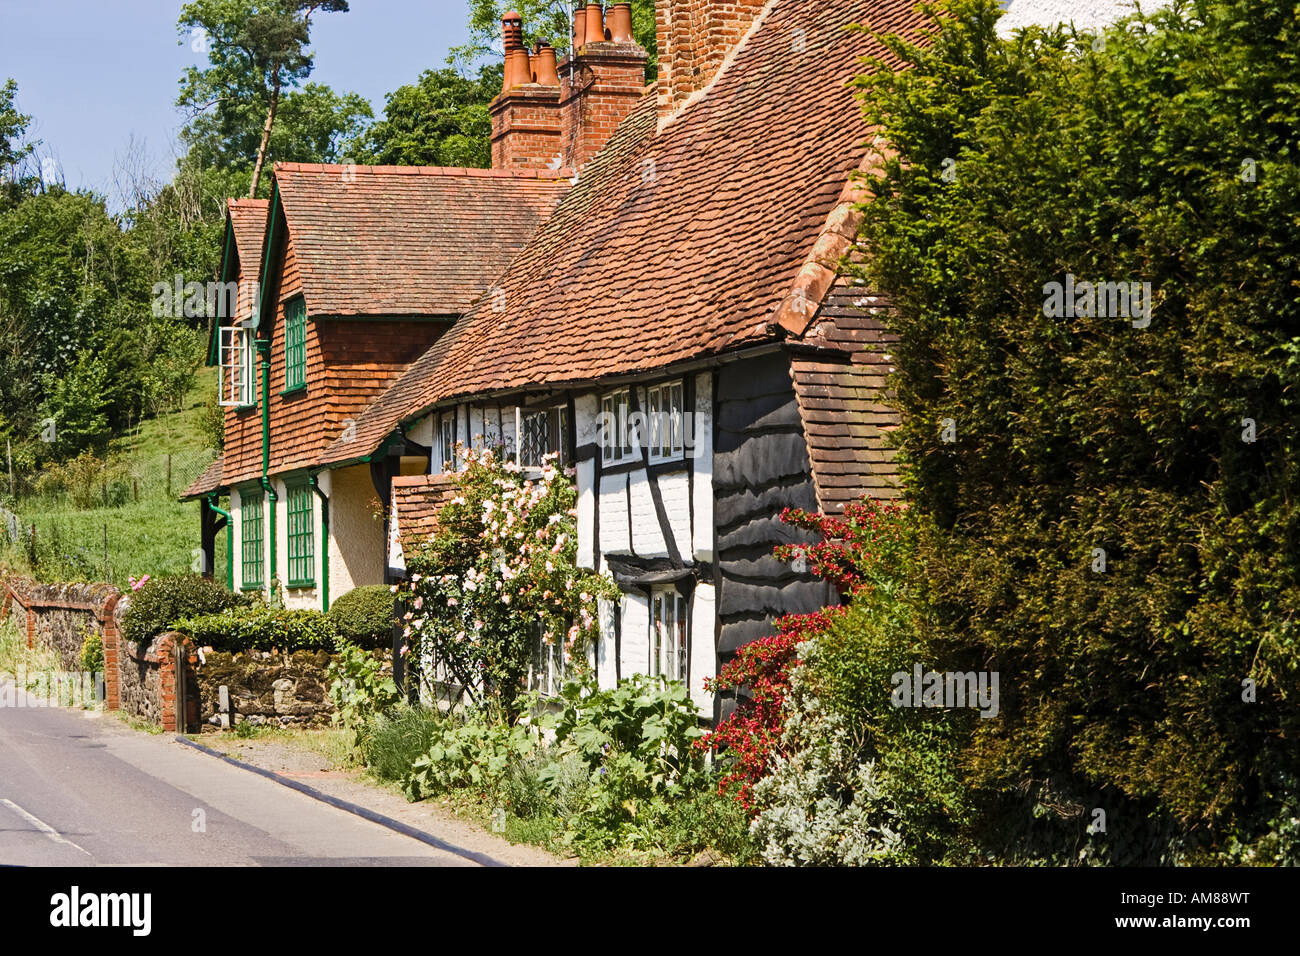 Traditional Surrey architecture in the old village of Shere Surrey England UK - Stock Image